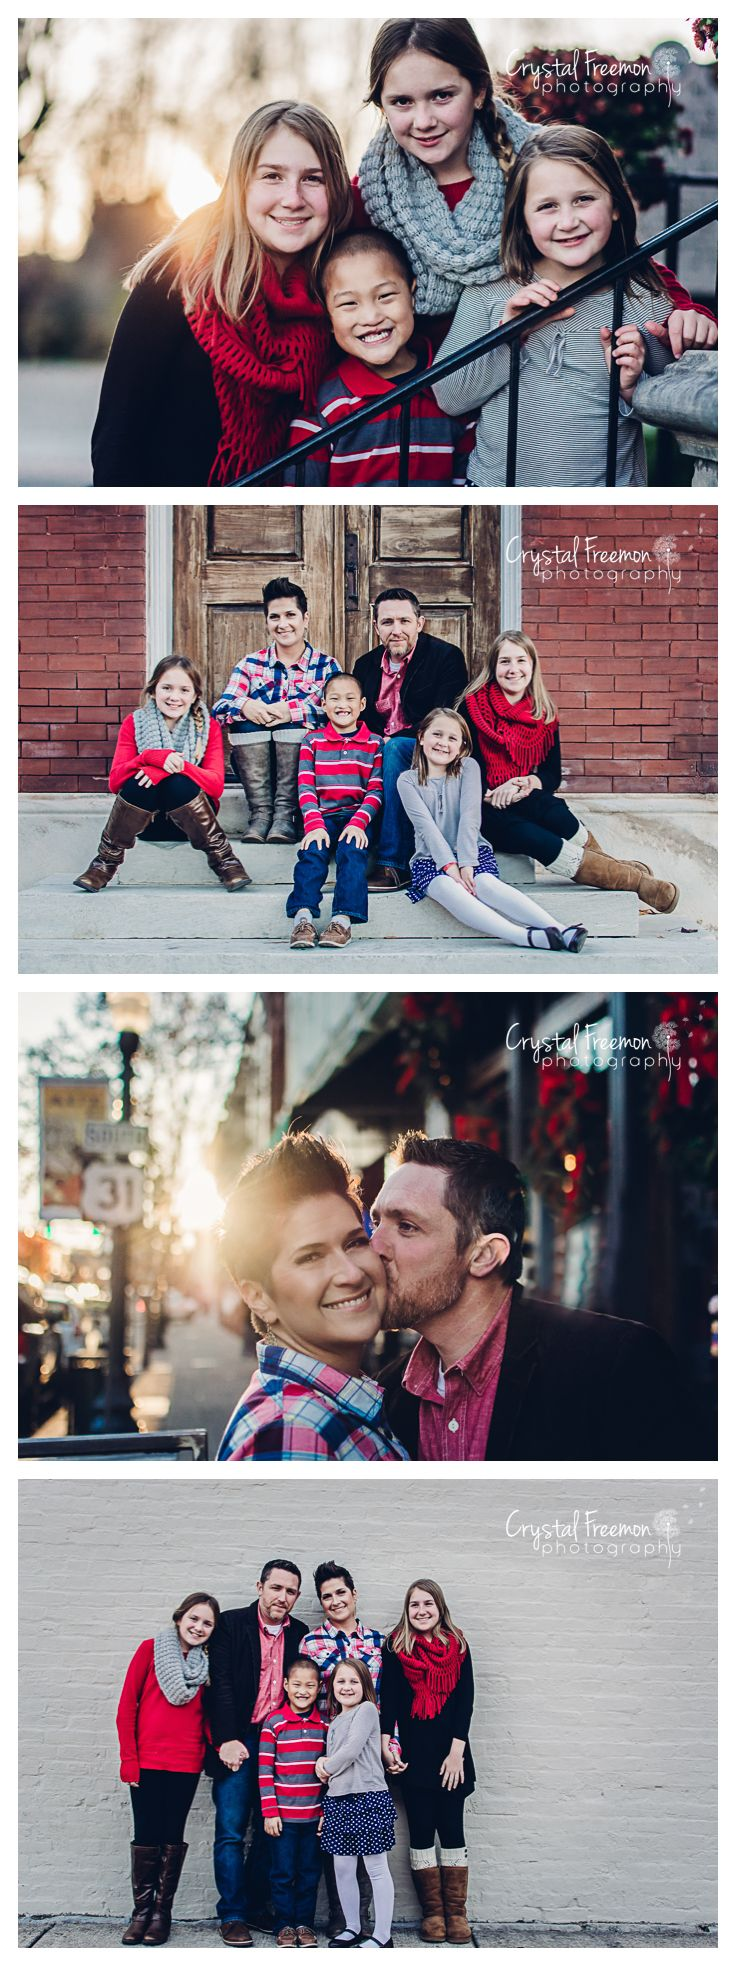 Family of six photo session in downtown Franklin, TN. Beautiful brick, historic streets, gorgeous architecture. Not recommended for very young children or Saturdays.